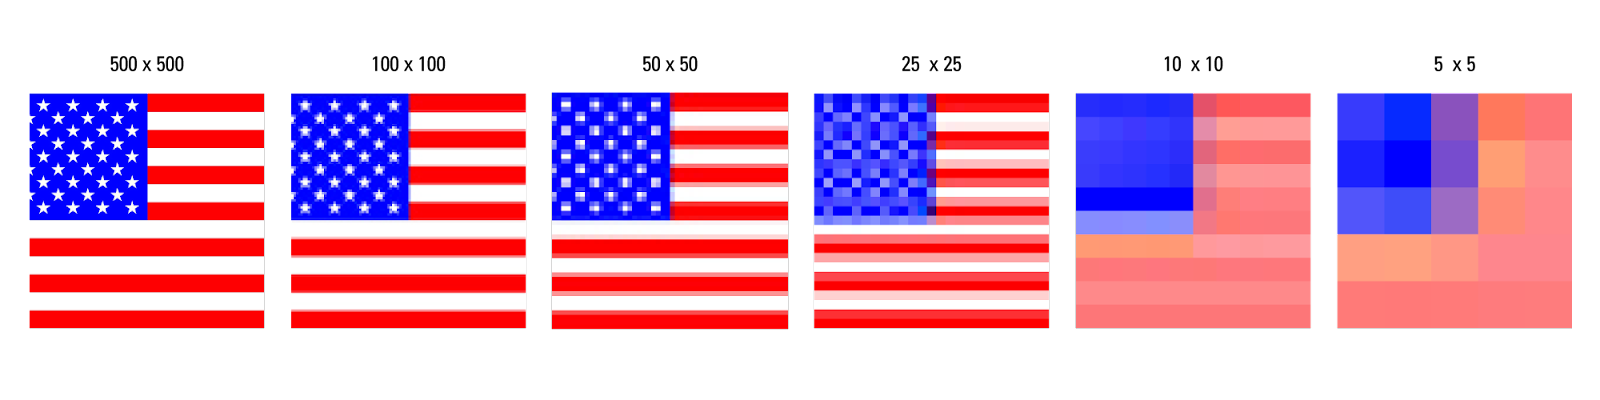 PixelFlags.png